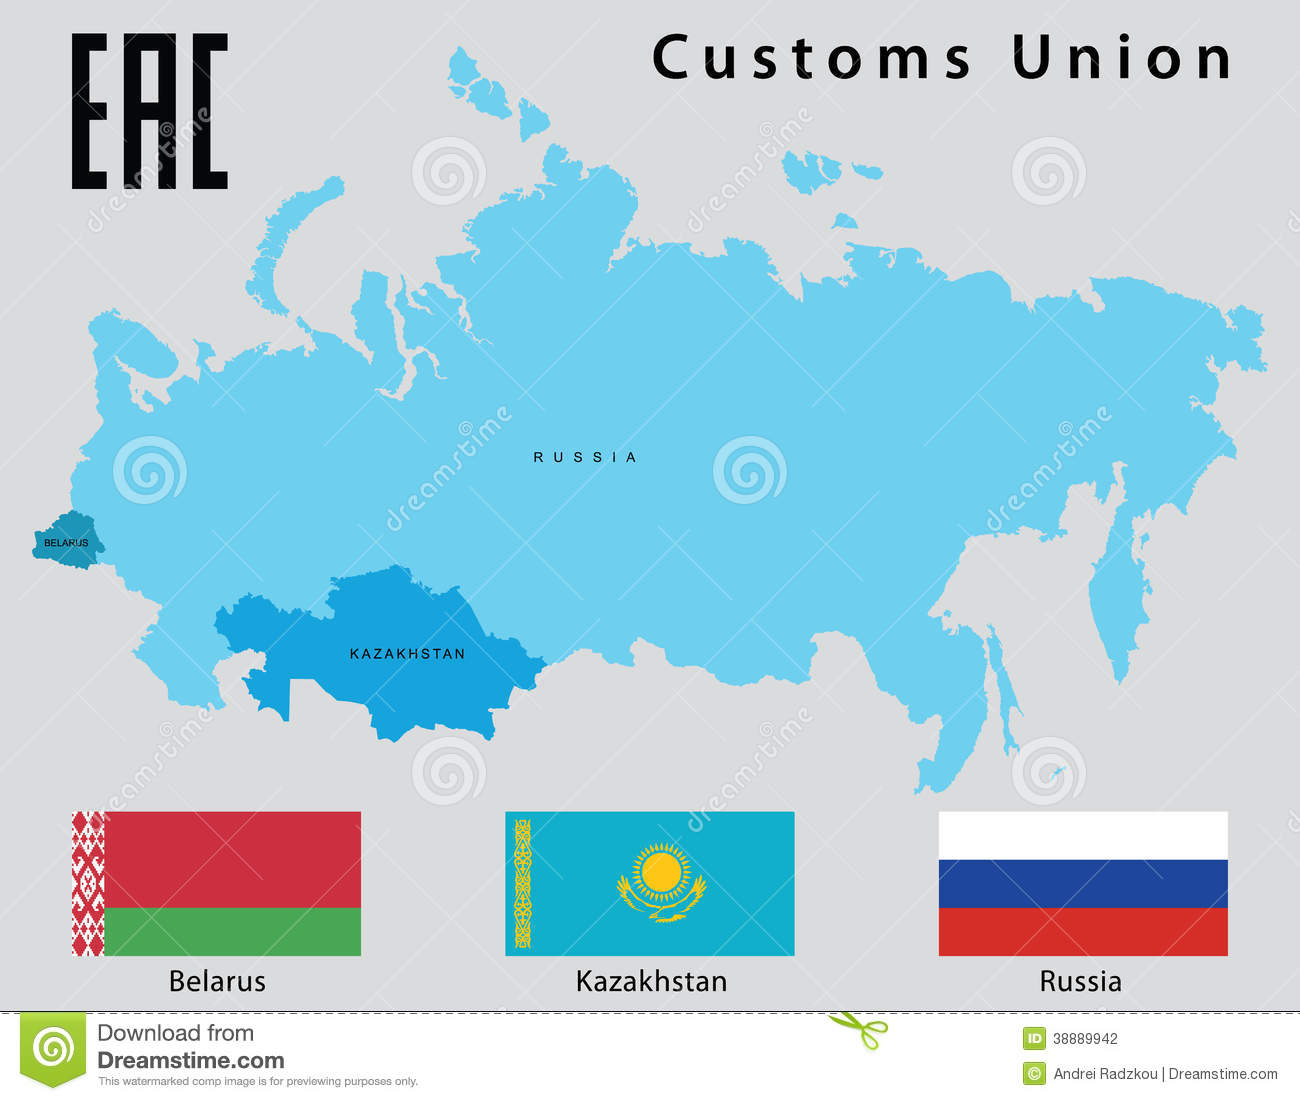 impact of custom union to kazakhstan Access of products to the single territory of the eurasian economic union - eaeu (belarus, russia, kazakhstan, armenia, kyrgyzstan) - formerly customs union is granted after products have proved to be compliant with the requirements of customs union technical regulations which are applicable to the product.